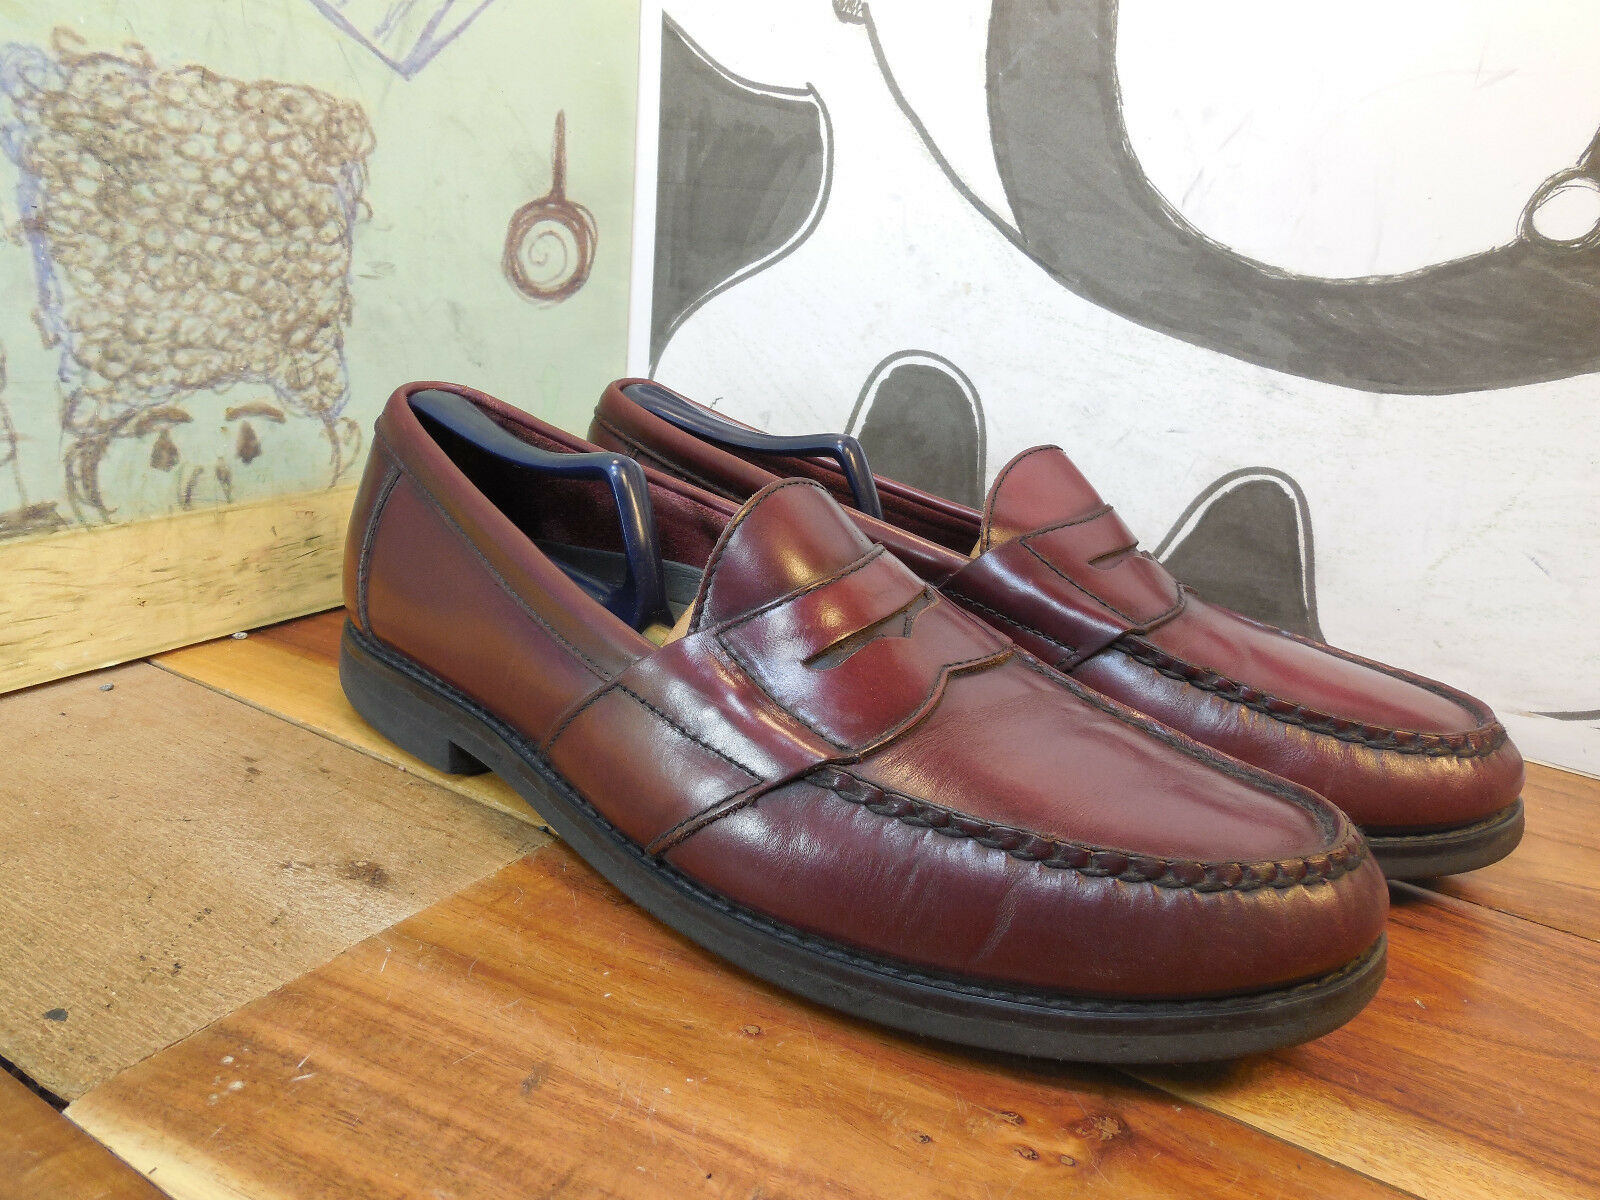 Rockport Genuine Handsewn Men's Brown Leather Penny Loafers Men's Handsewn 10.5N #M2807 a3191b